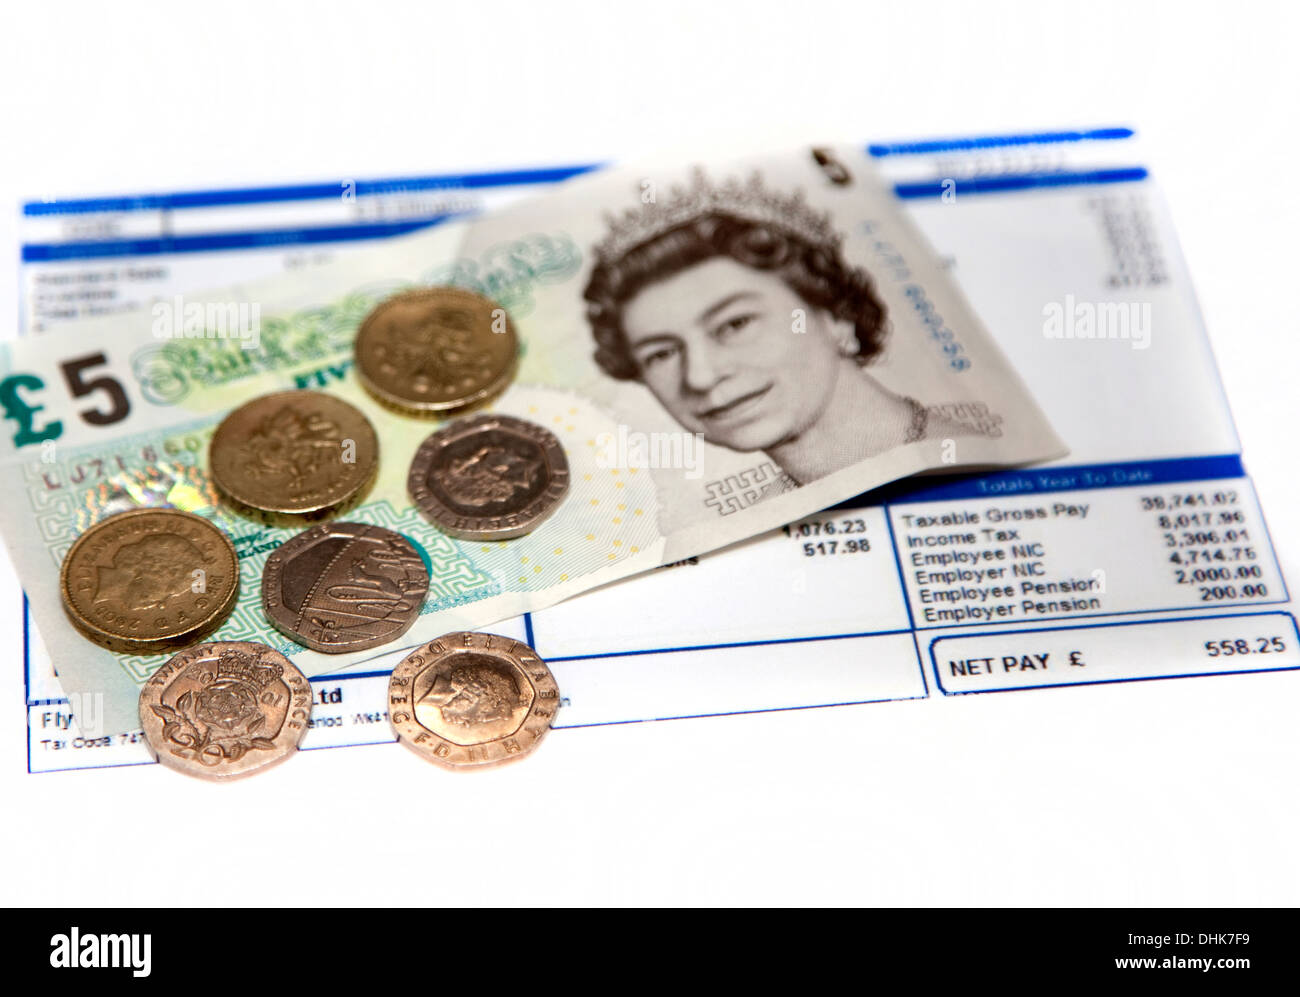 London Living Wage is £8.80 per hour in November 2013 - Stock Image